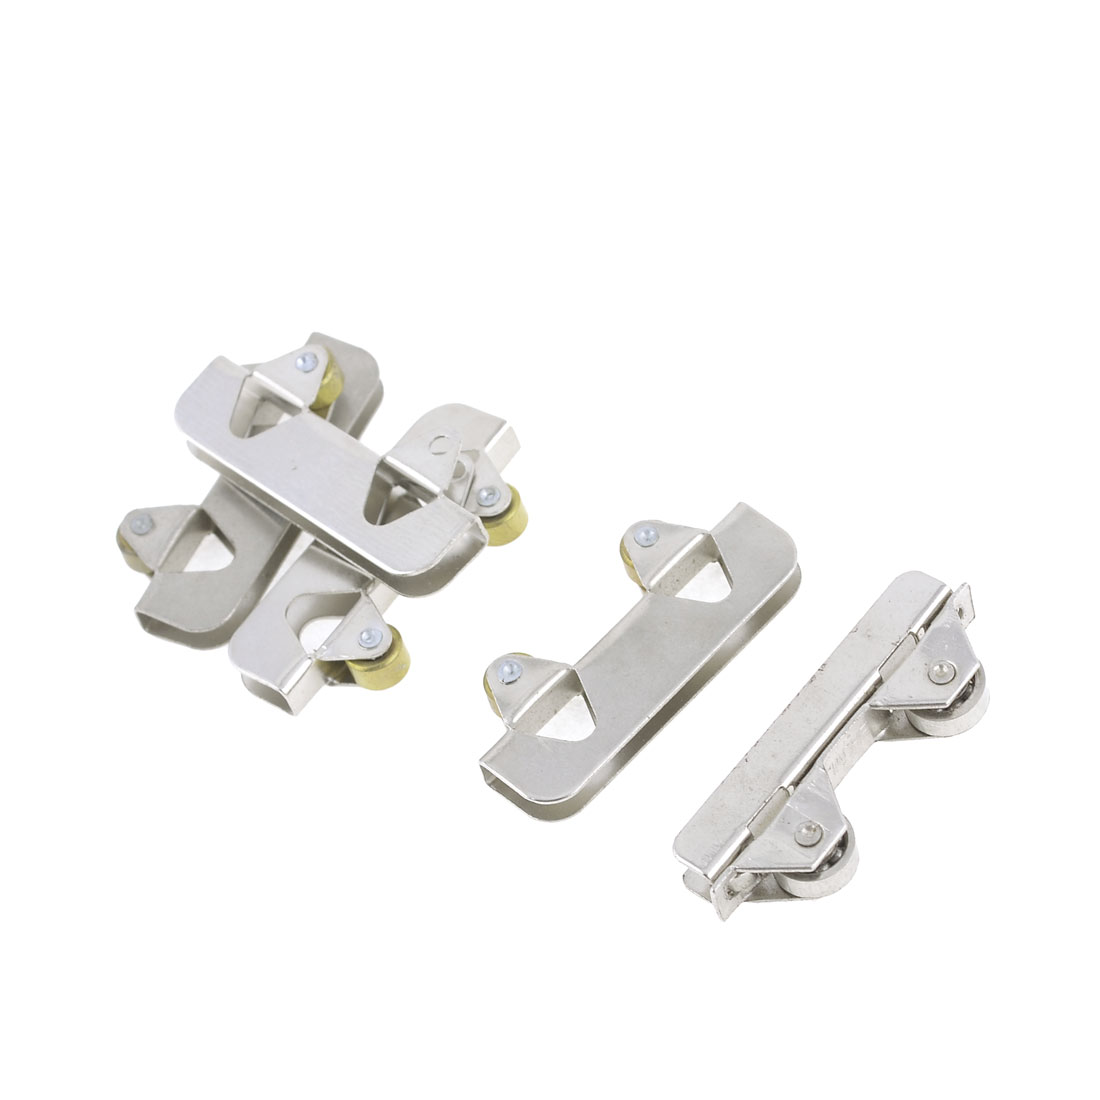 5 Pieces Sliding Door 6mm Dia Dual Rollers Window Sash Pulley Wheel